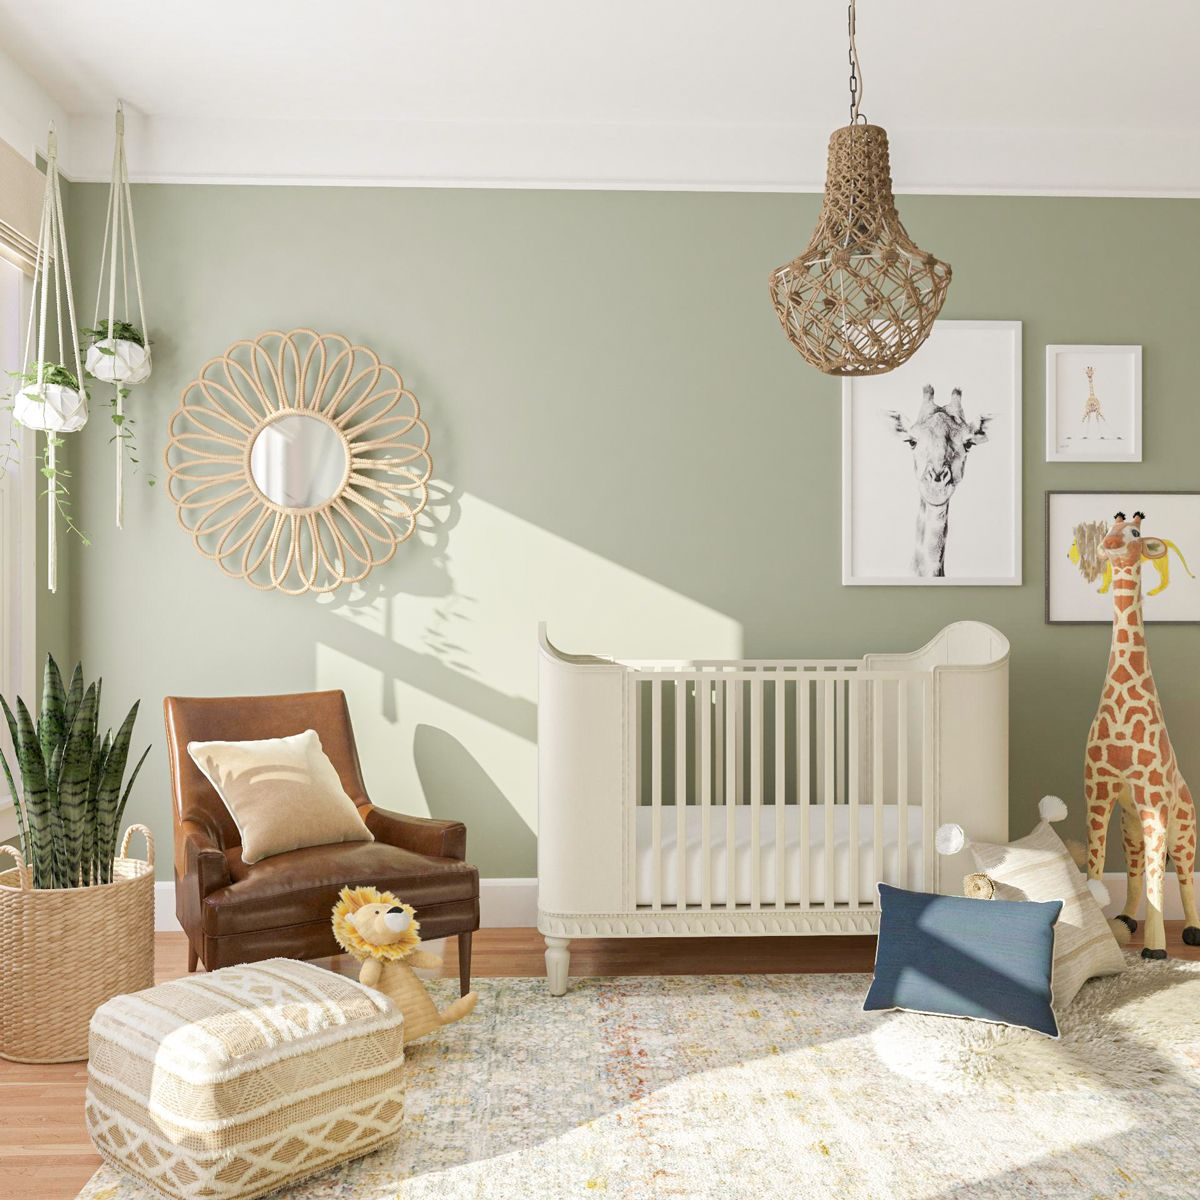 9 Trendy Nursery Ideas For Your Baby S Room Design Modsy Blog Baby Boy Room Nursery Baby Room Neutral Modern Baby Room